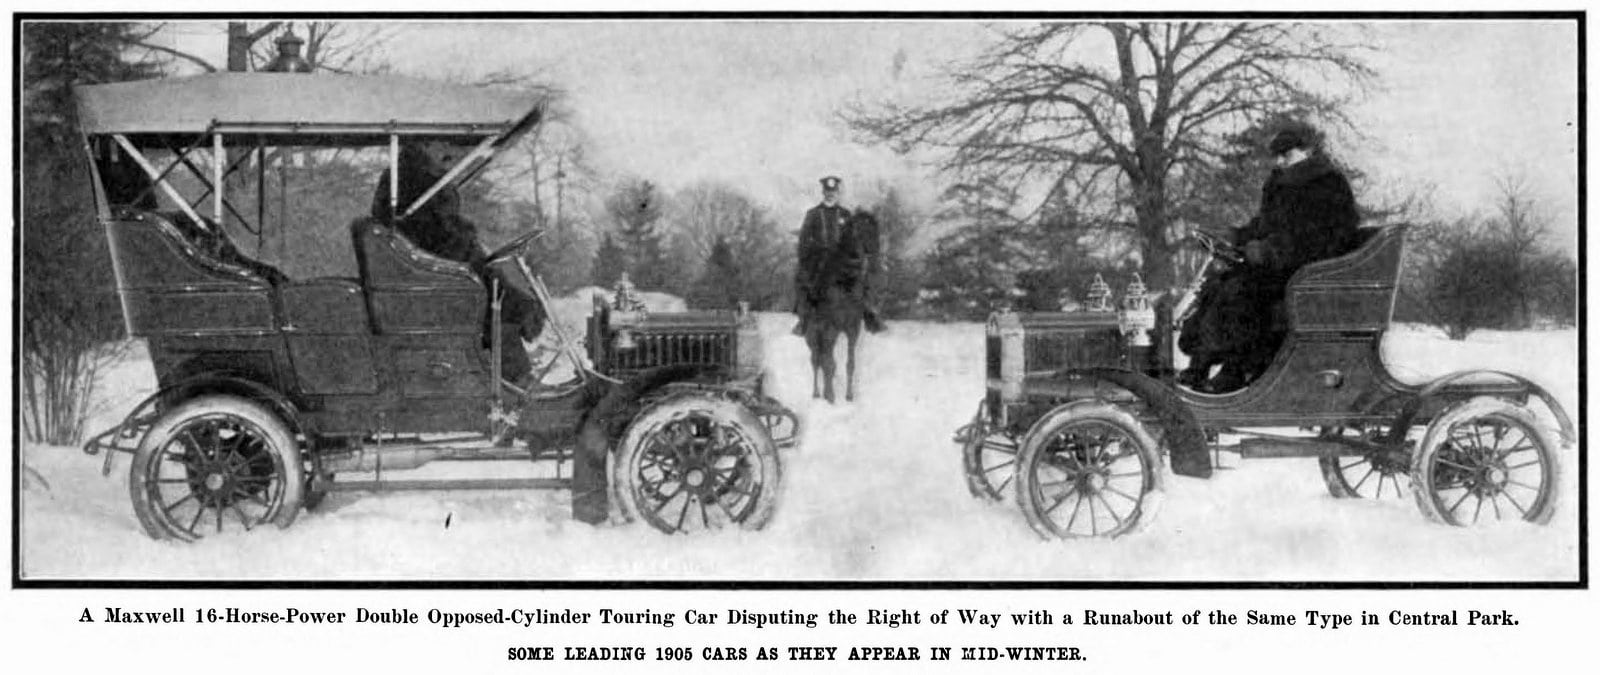 Classic 1905 Maxwell cars in Scientific American magazine